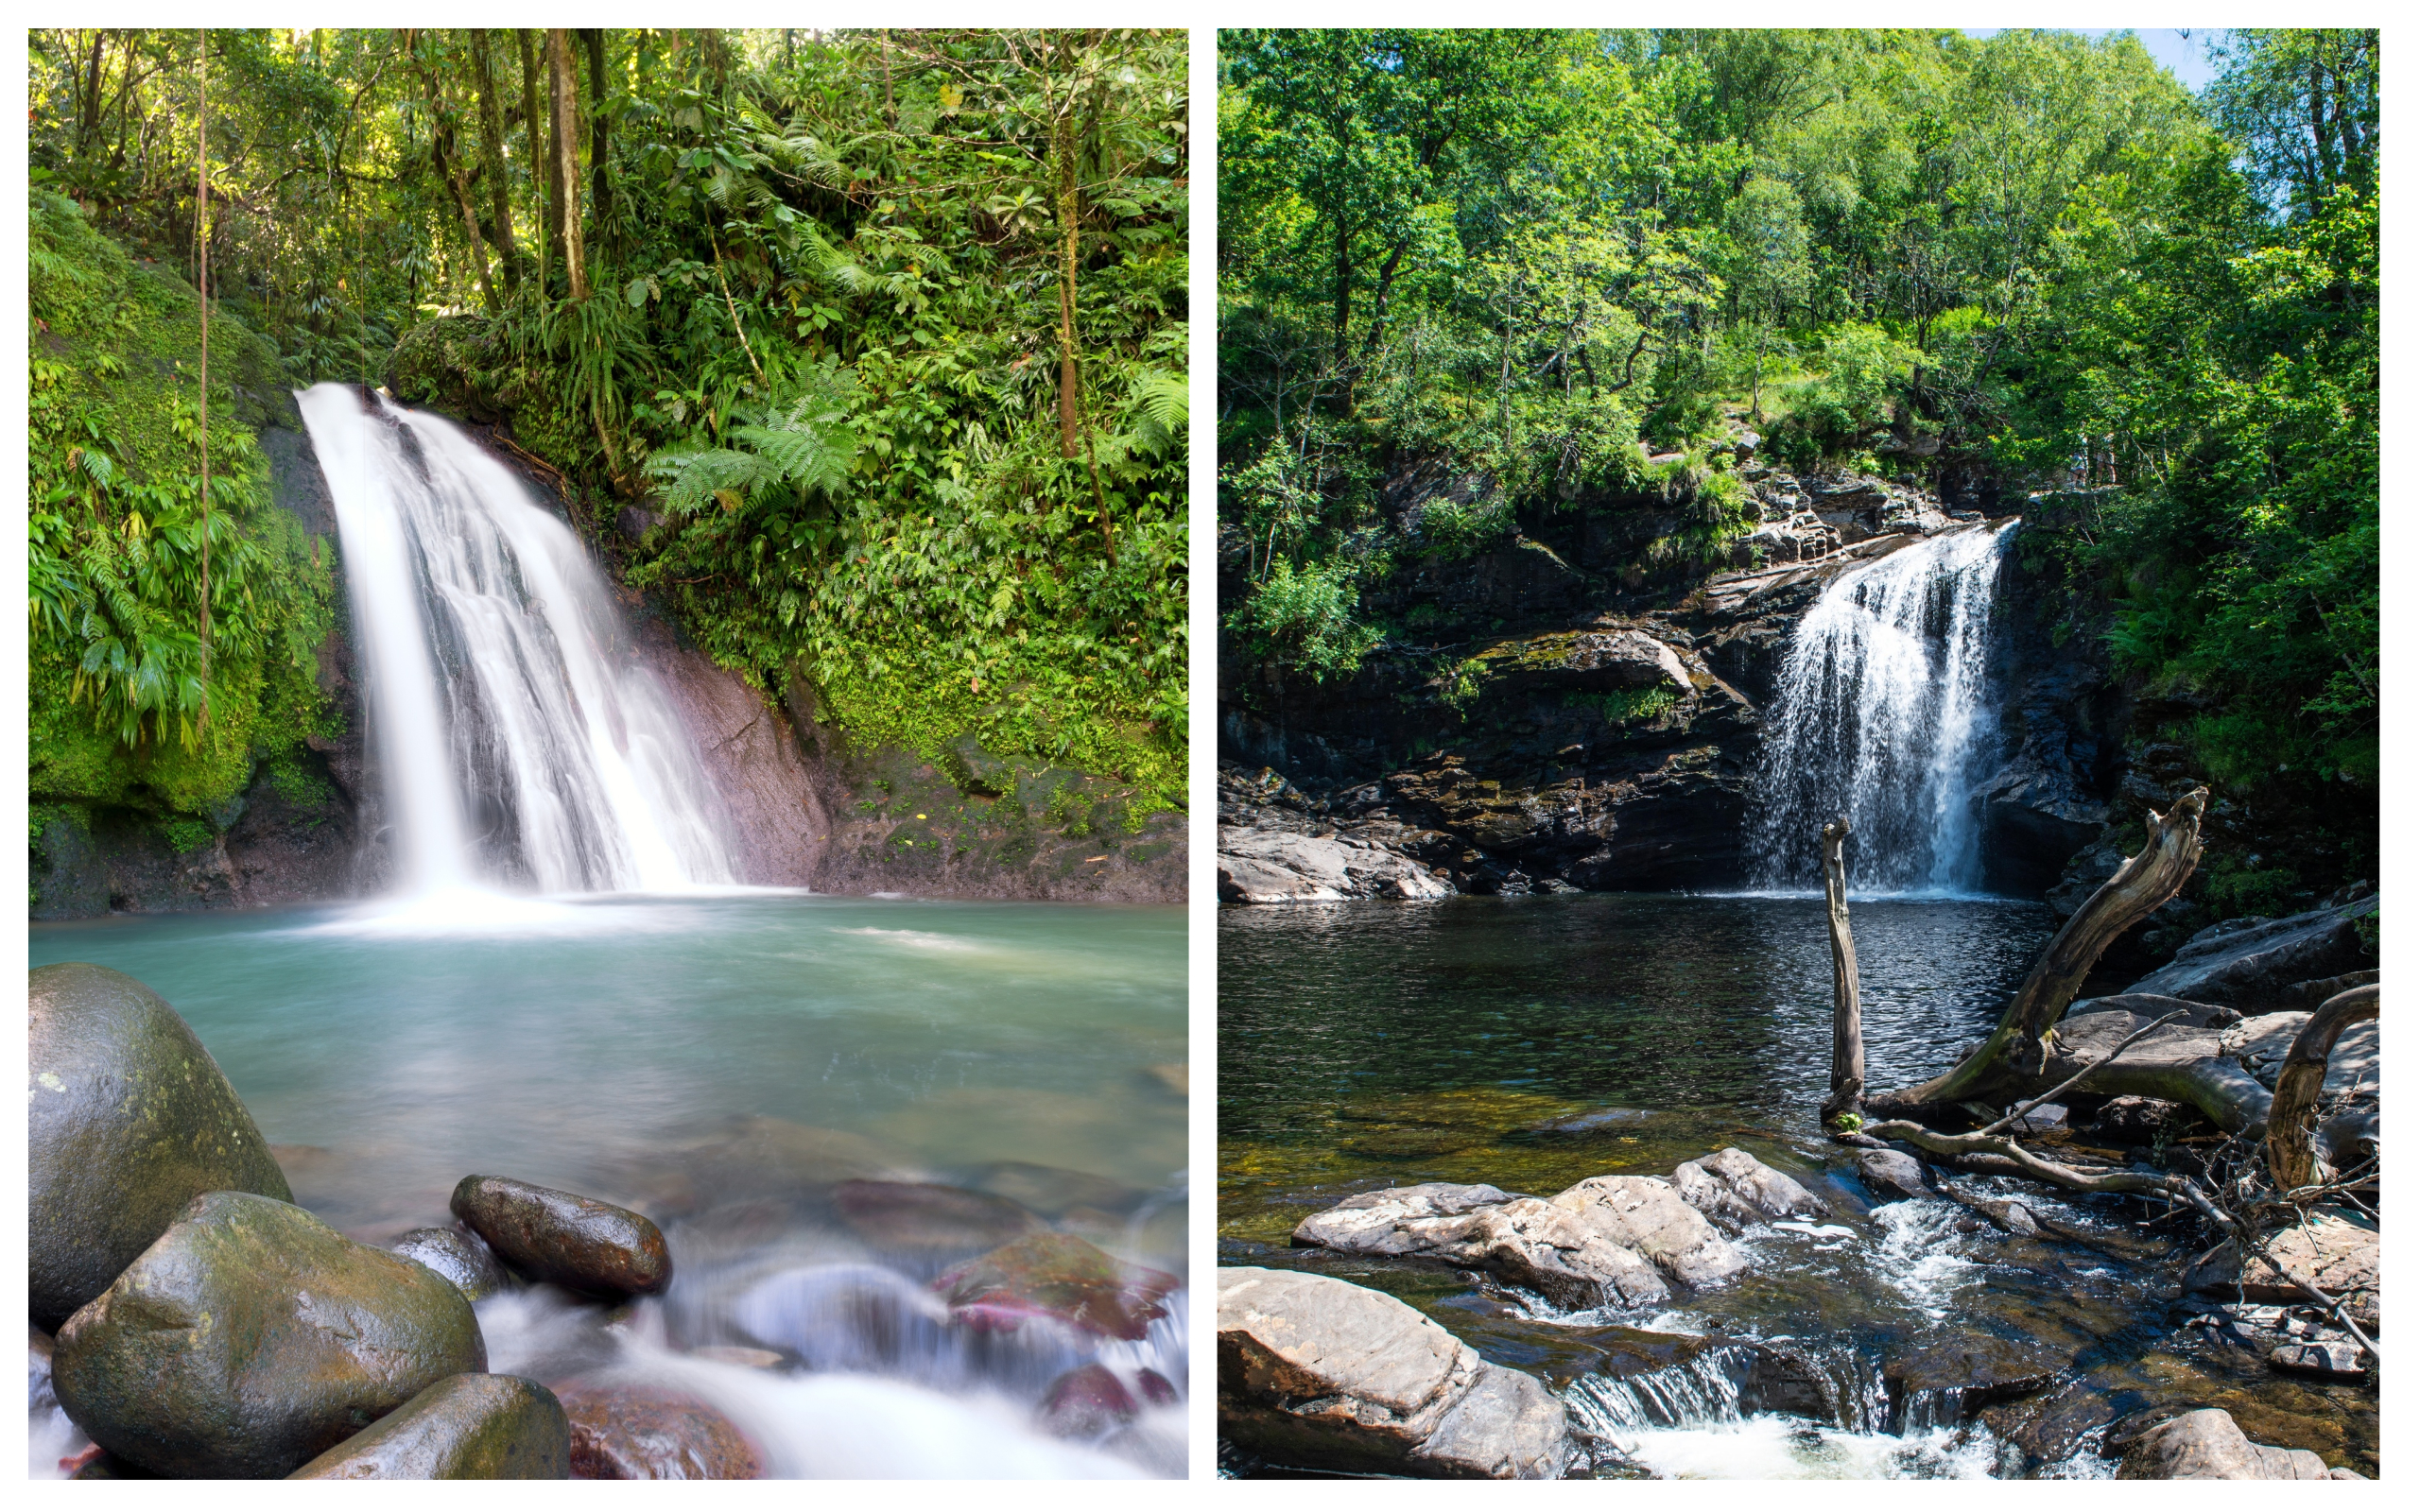 Left - Cascades aux Ecrevisses, Guadeloupe; Right - The Falls of Trossachs, Scotland (Thinkstock/Alamy/PA)